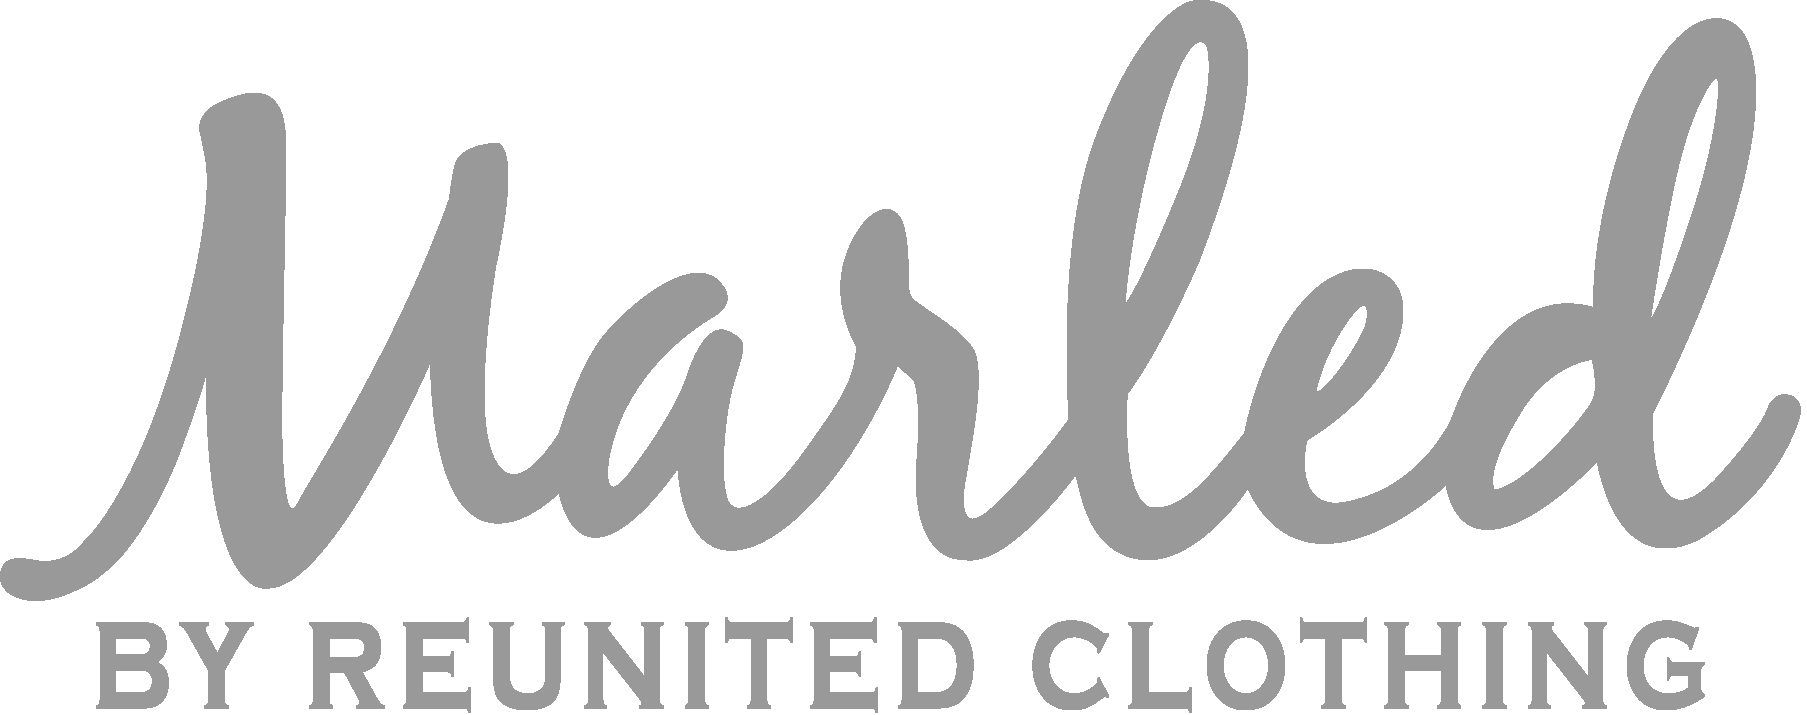 Marled by Reunited Clothing